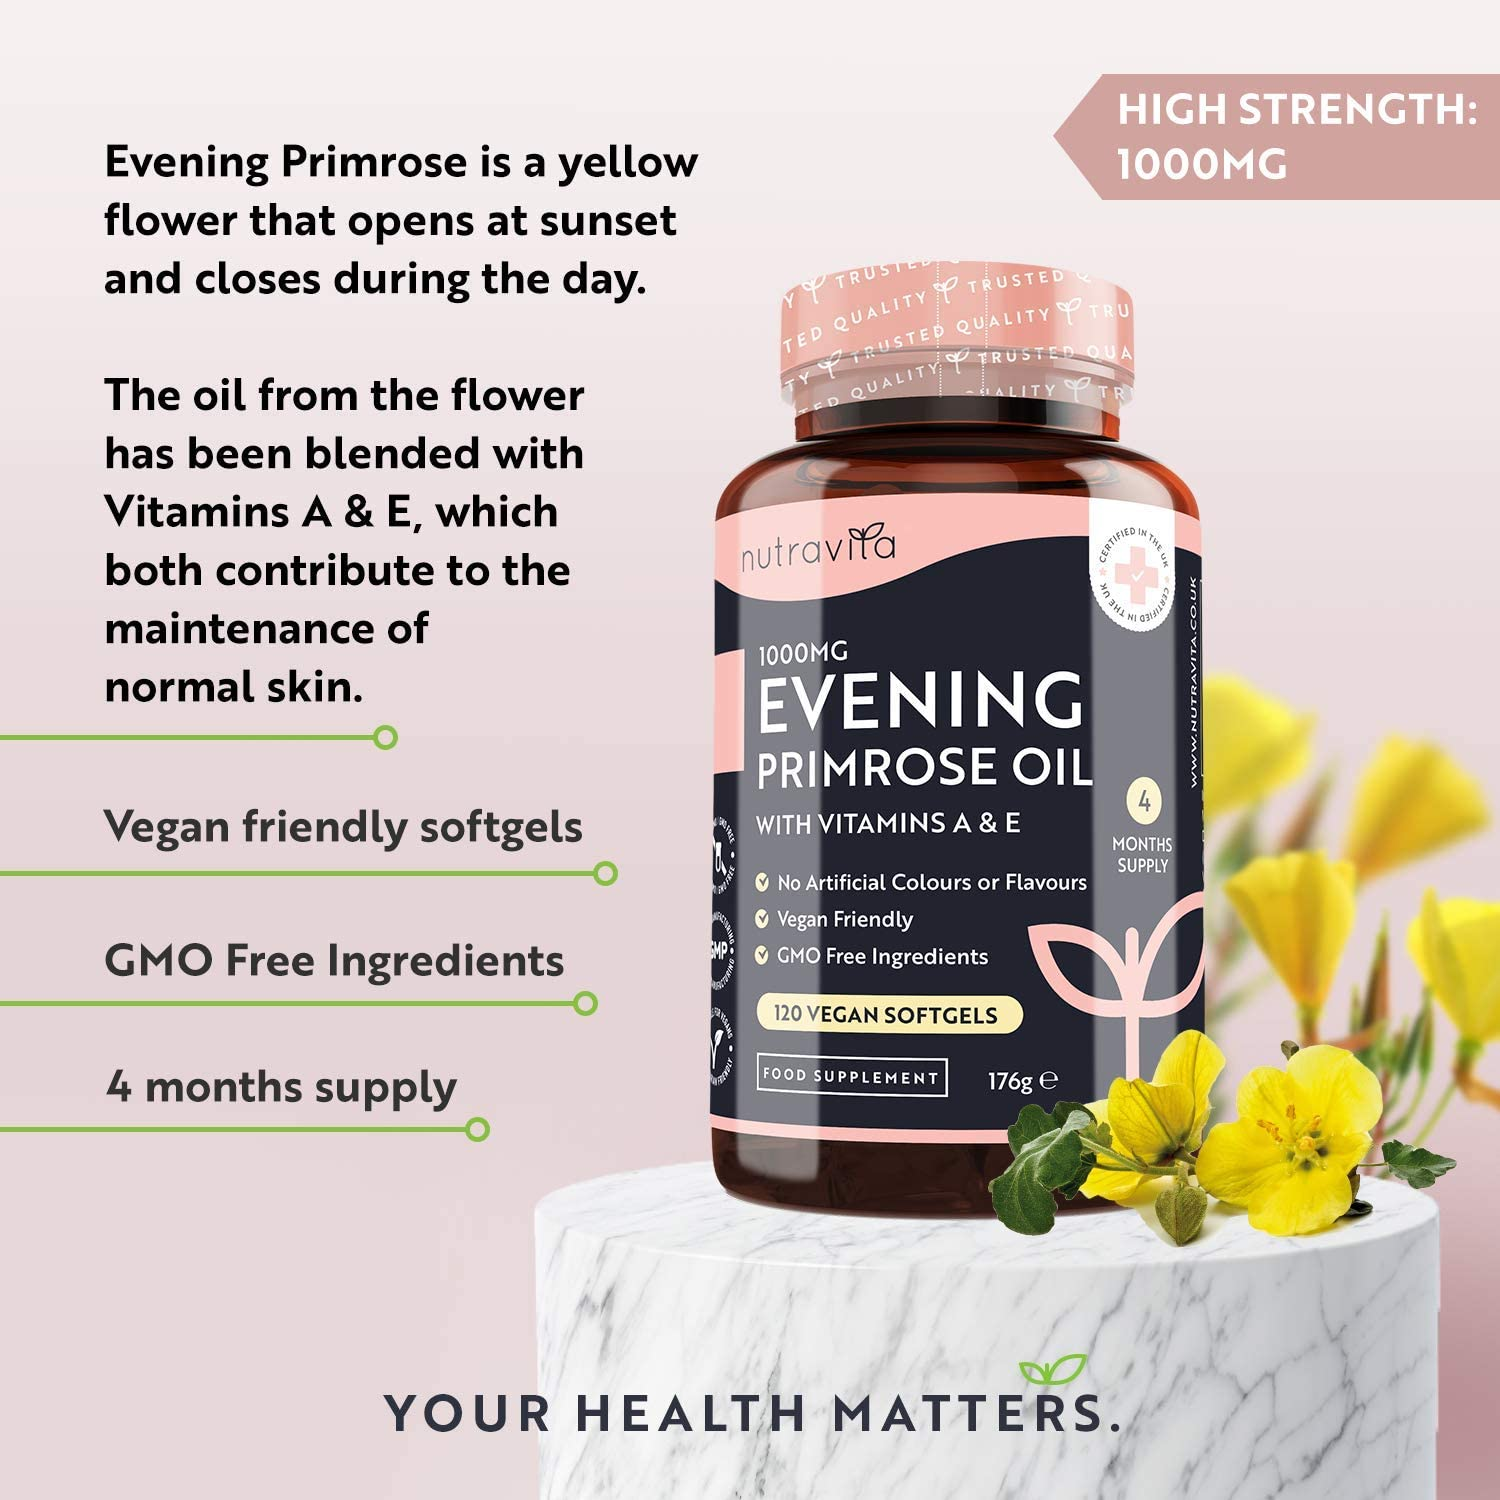 Evening Primrose Oil 1000mg with Vitamins A & E 120 Vegan Softgels